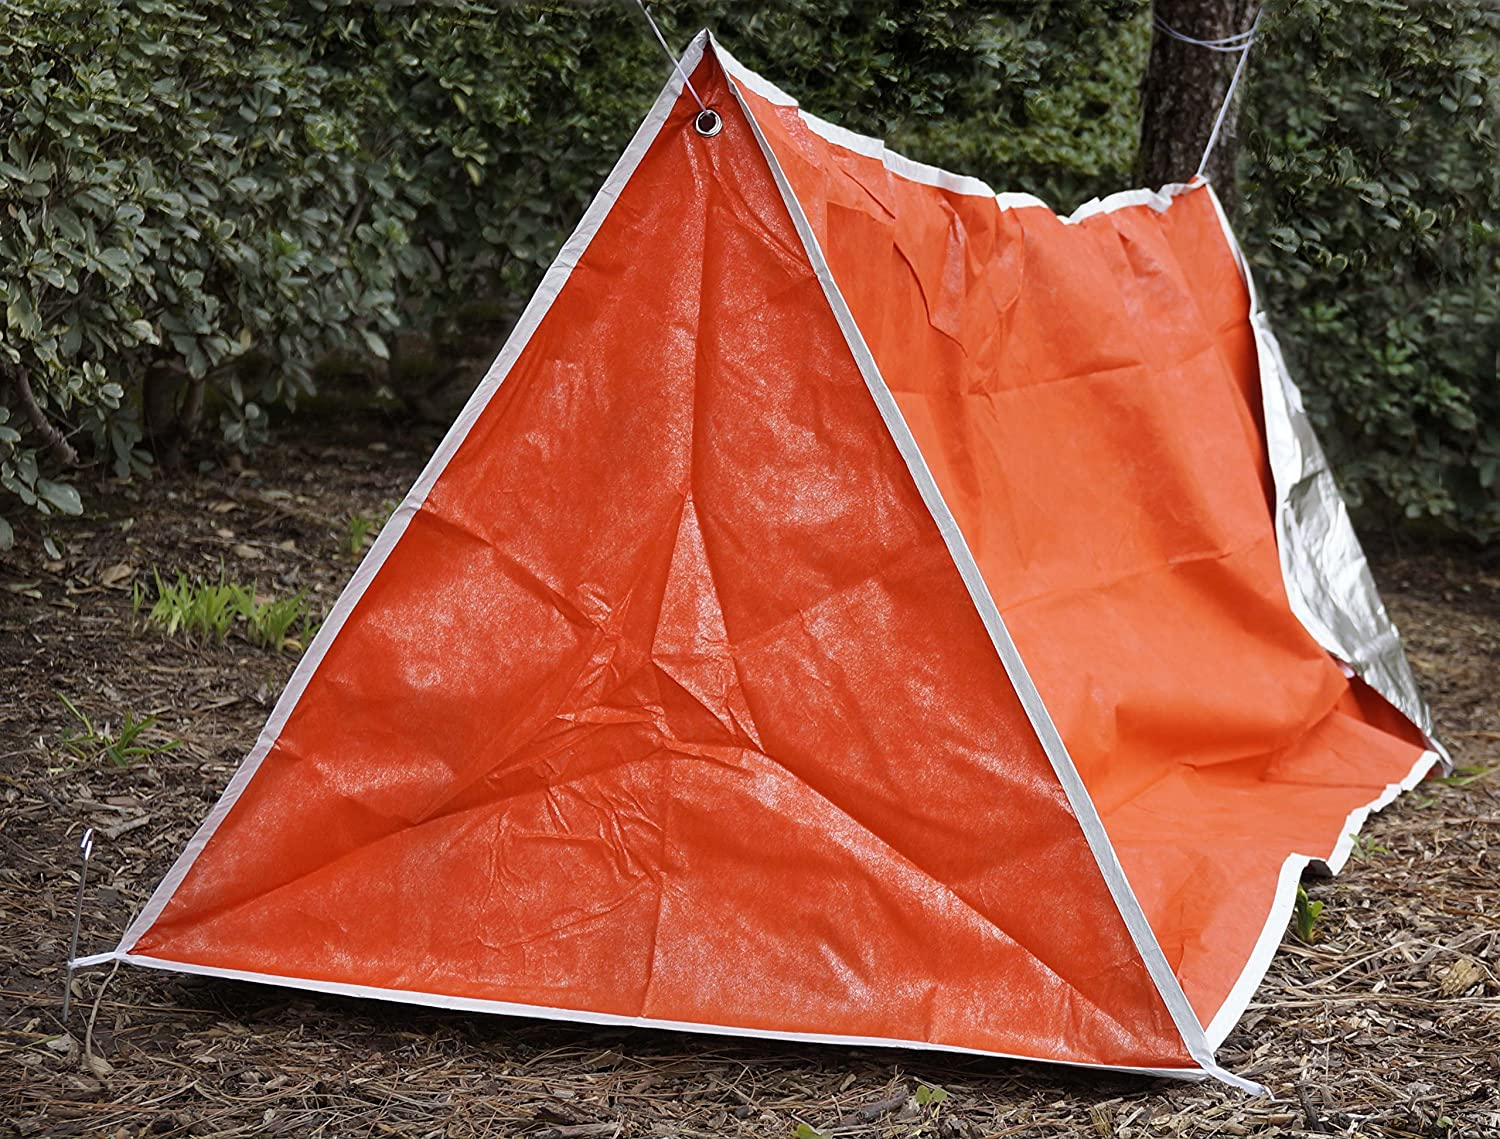 SE ET3683 Emergency Outdoor Tube Tent with Steel Tent Pegs Amazon.co.uk DIY u0026 Tools : tent tube - memphite.com